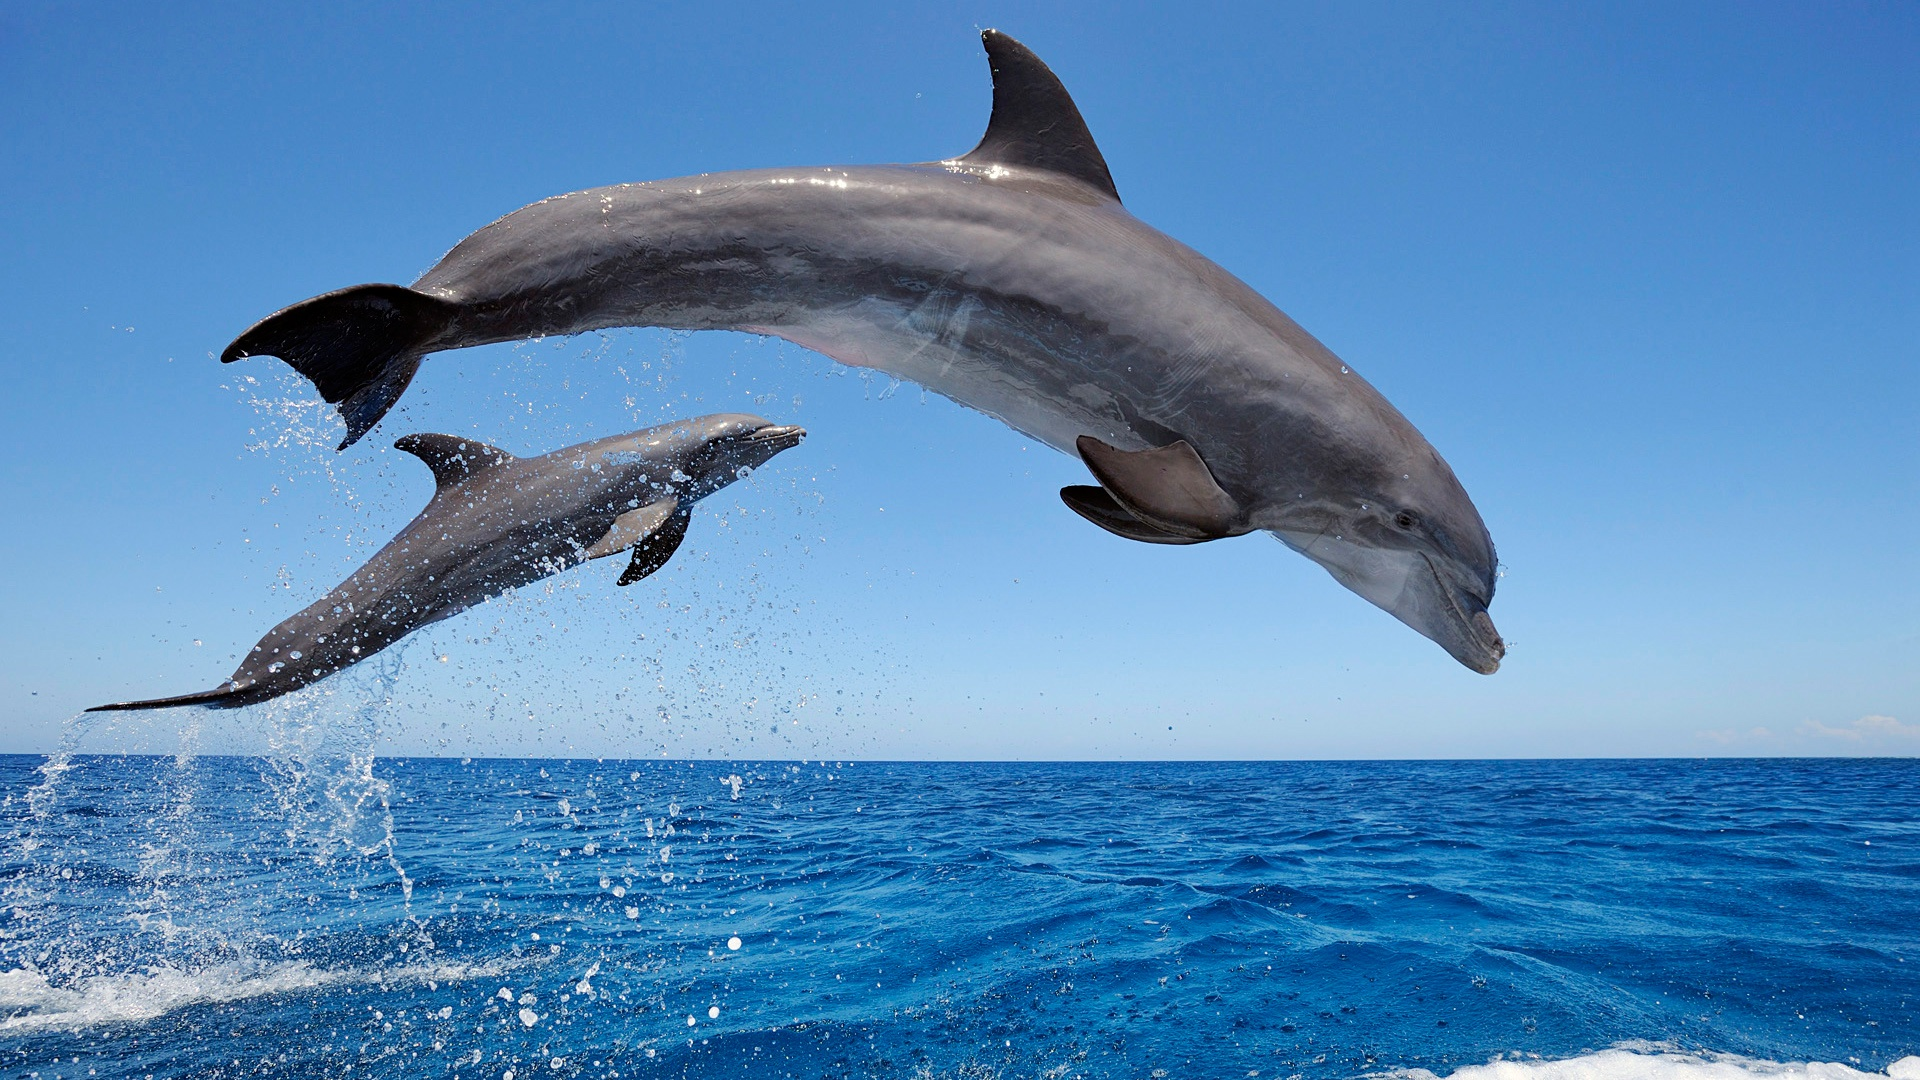 Common-Bottlenose-Dolphins-1920x1080-Need-iPhone-S-Plus-Background-for-IPhoneSP-wallpaper-wpc5803606